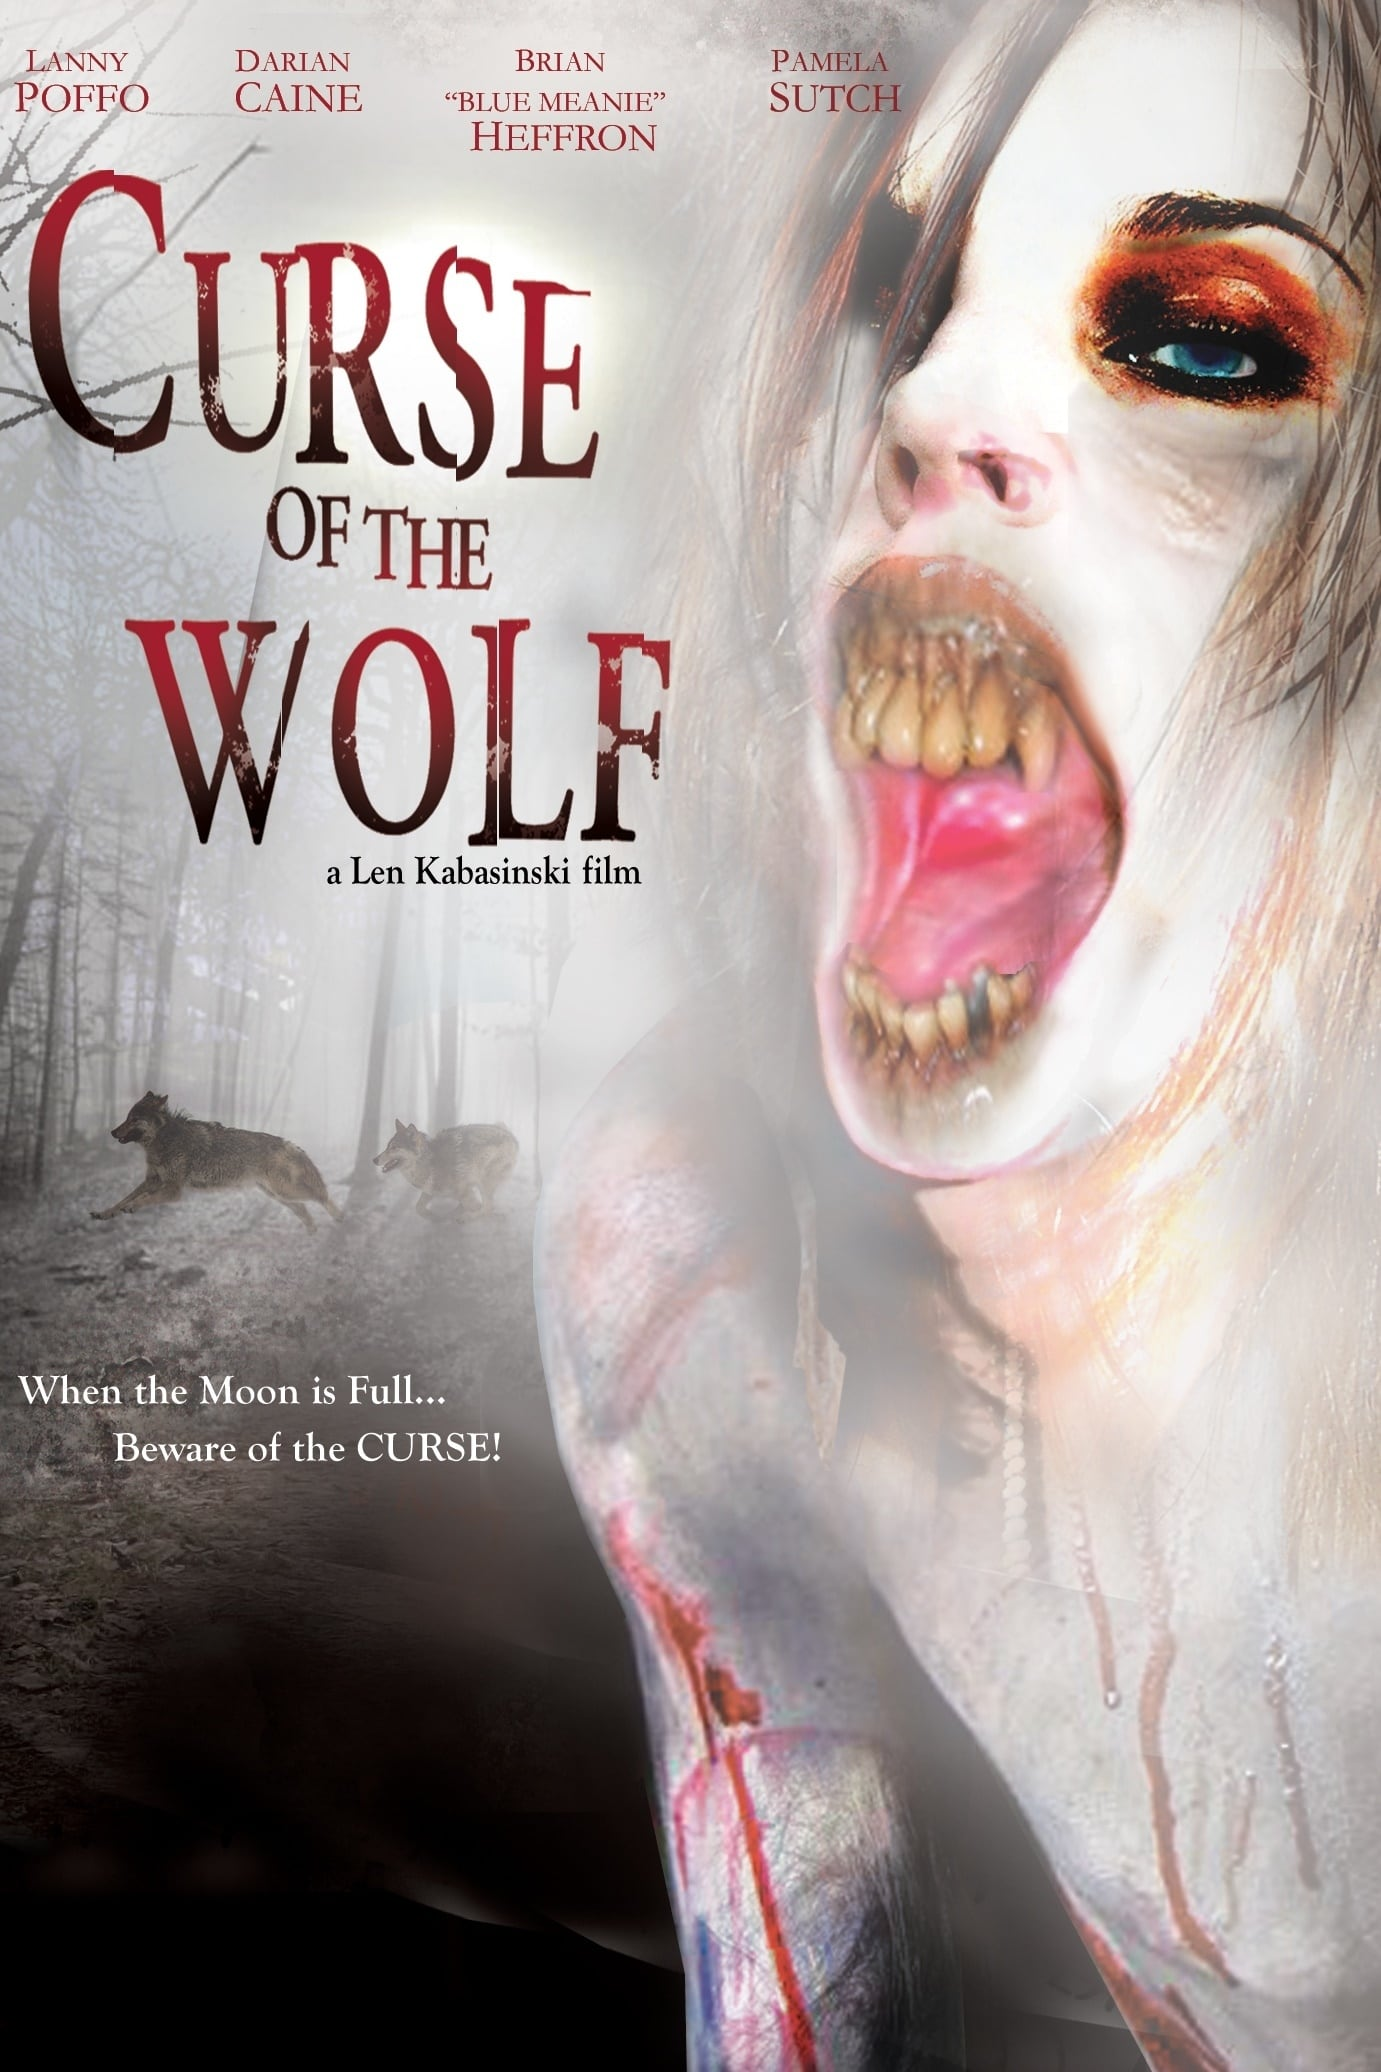 Curse of the Wolf (2006)